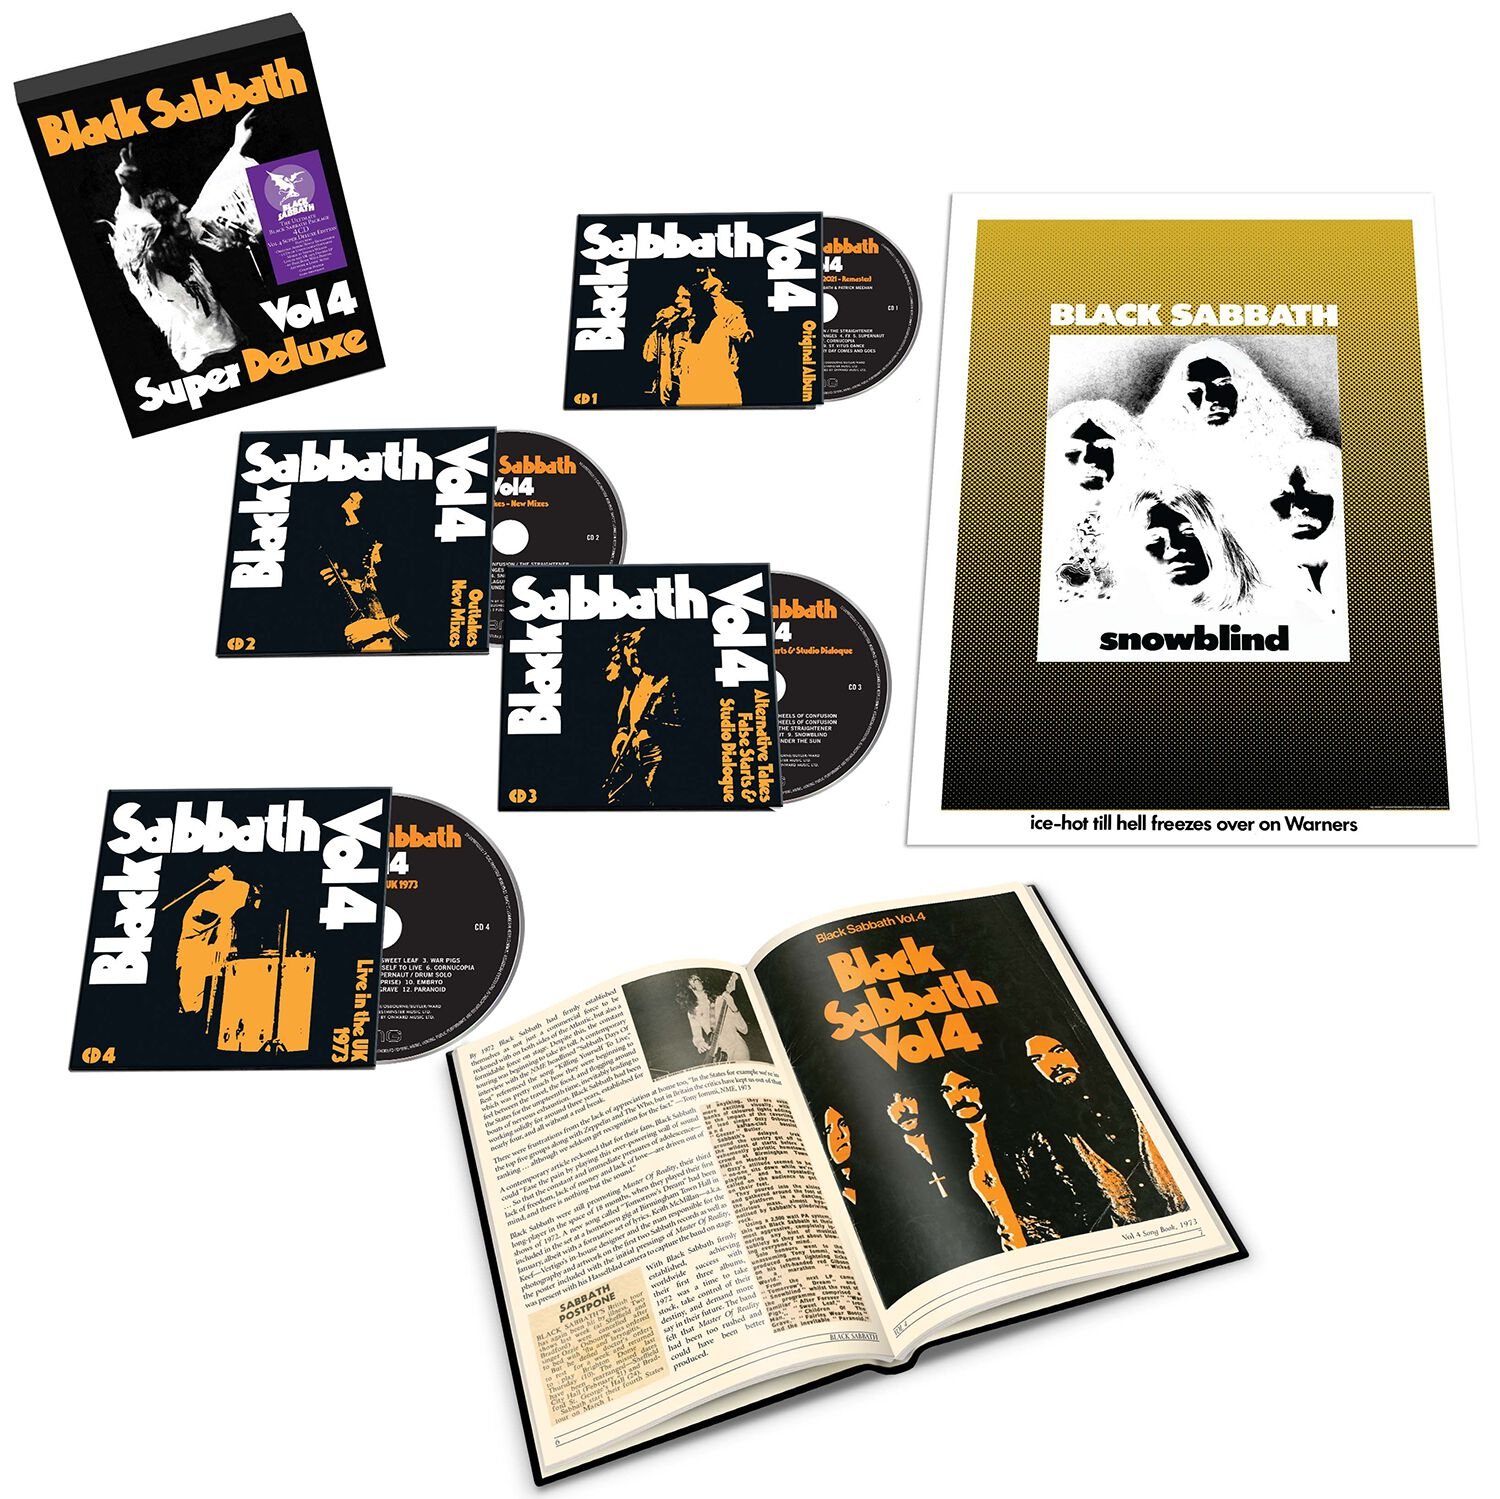 Image of Black Sabbath Vol. 4 4-CD Standard